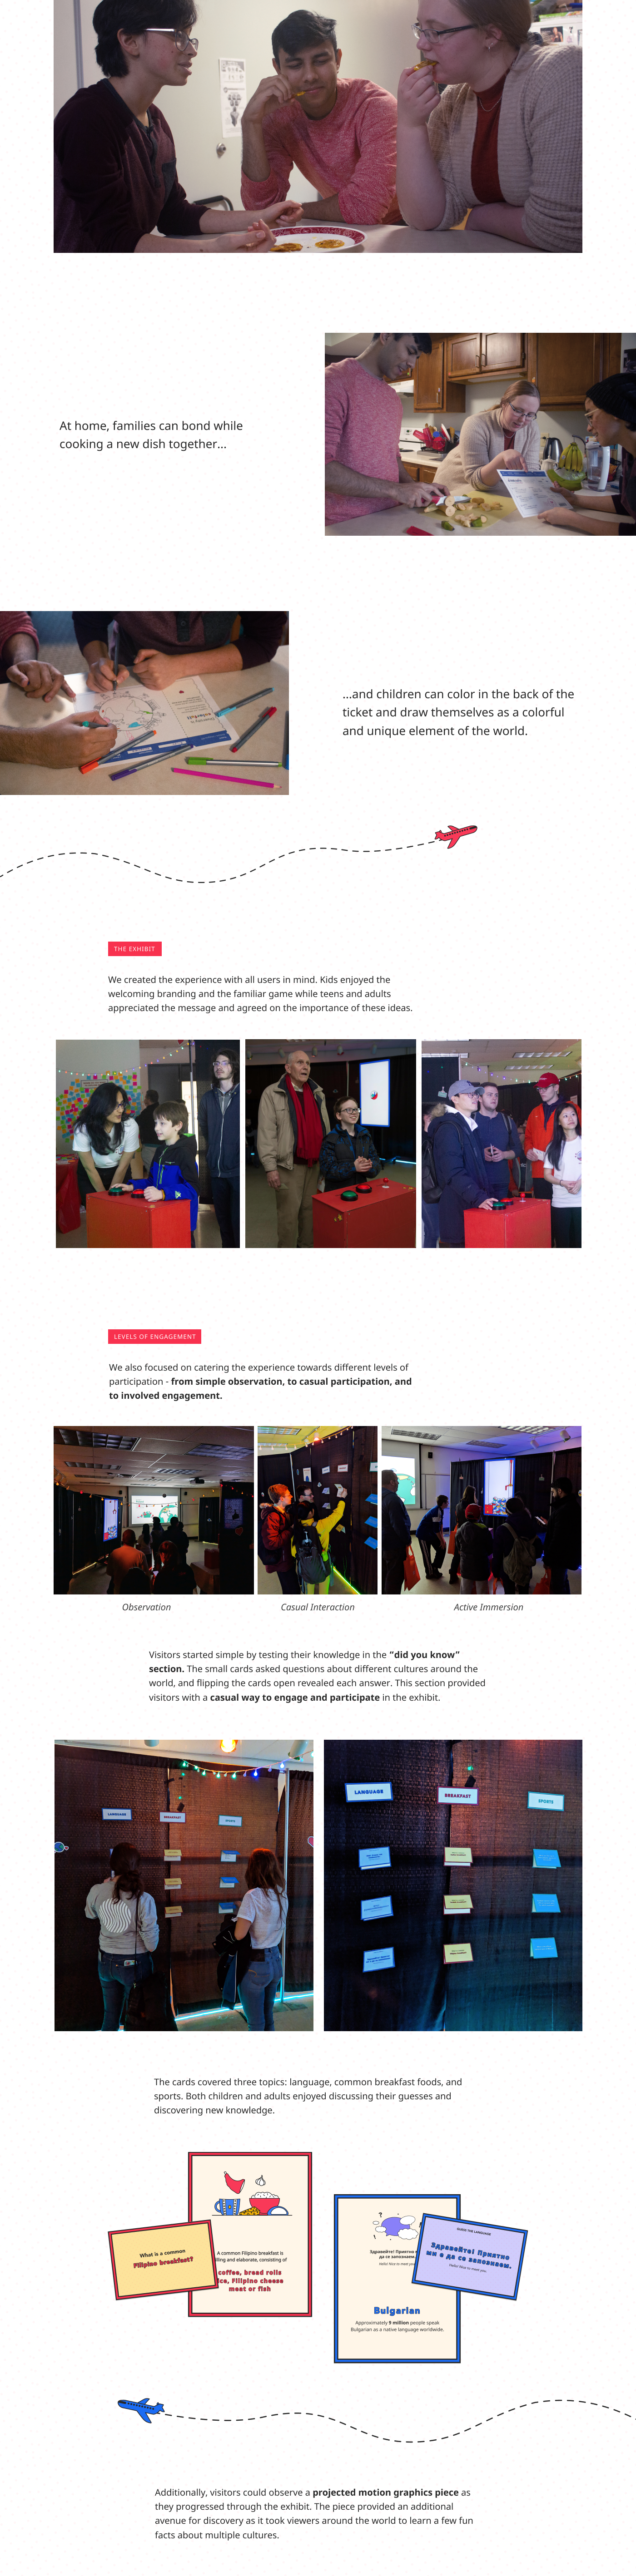 adobeawards,Diversity,Education,Motion Projection,EXHIBIT DESIGN,culture,claw machine,game,interactive exhibit,Captone